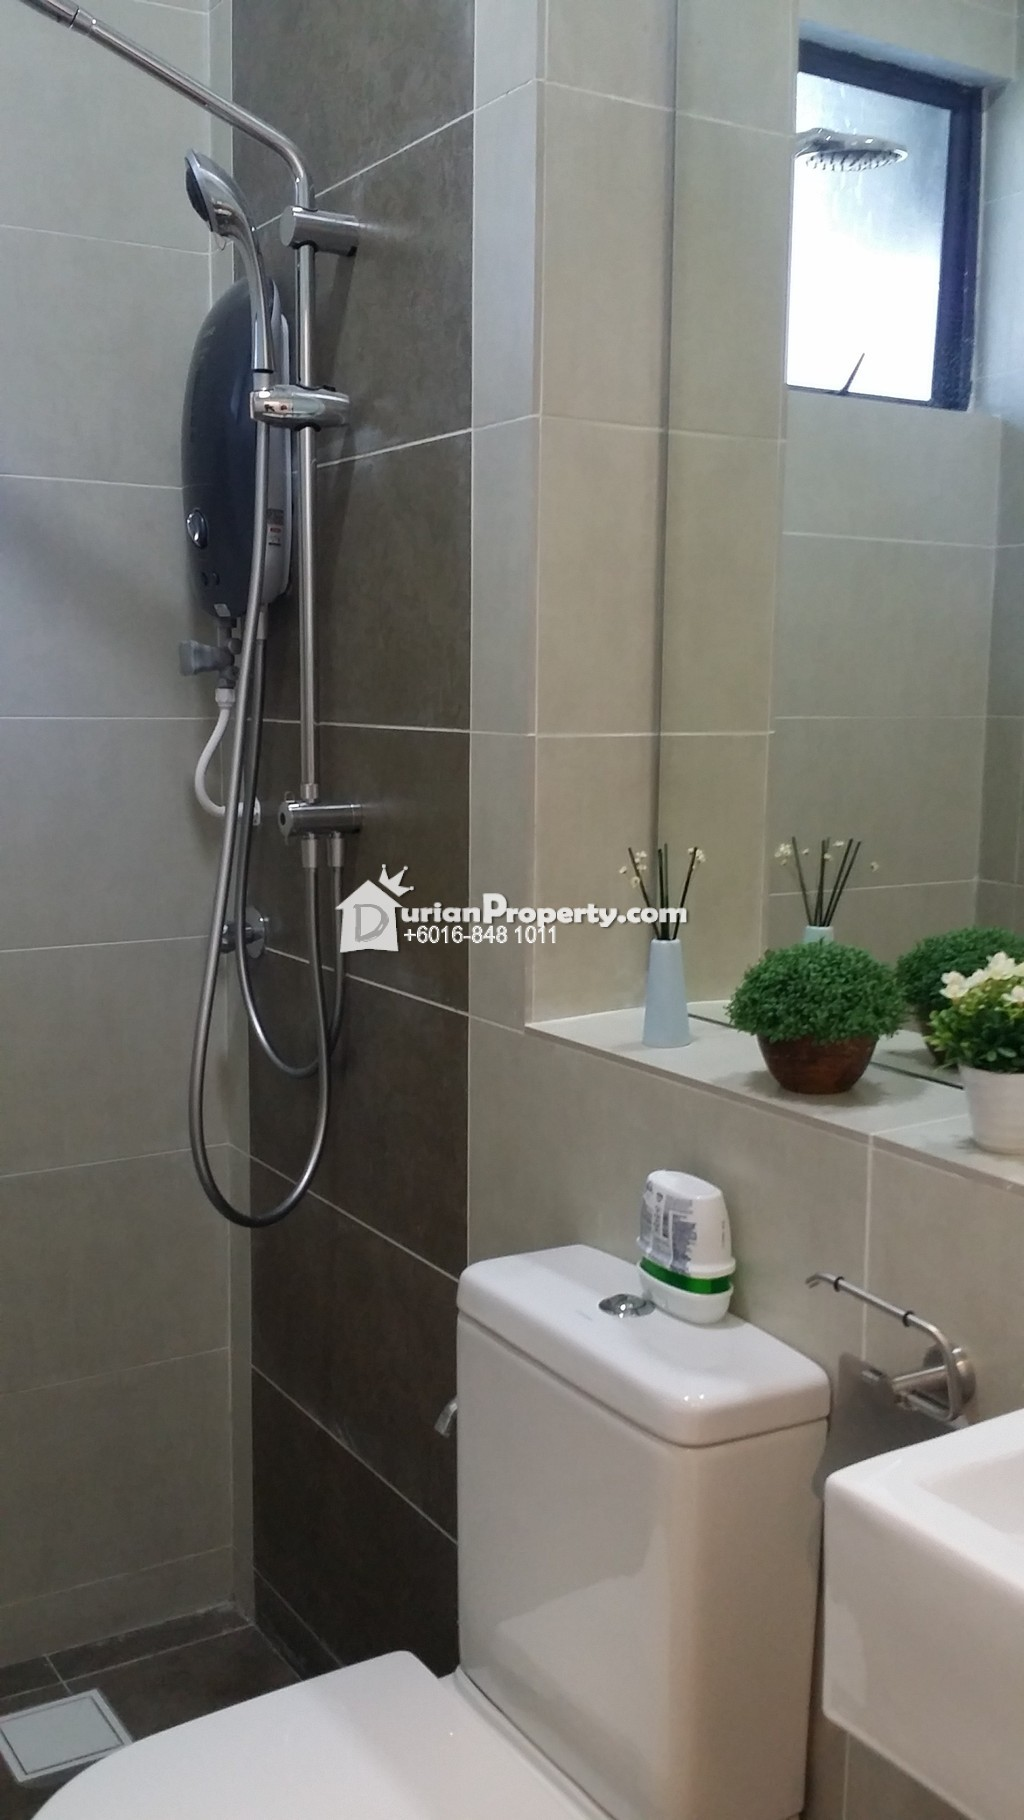 bathroom accessories kota kinabalu healthydetroiter com